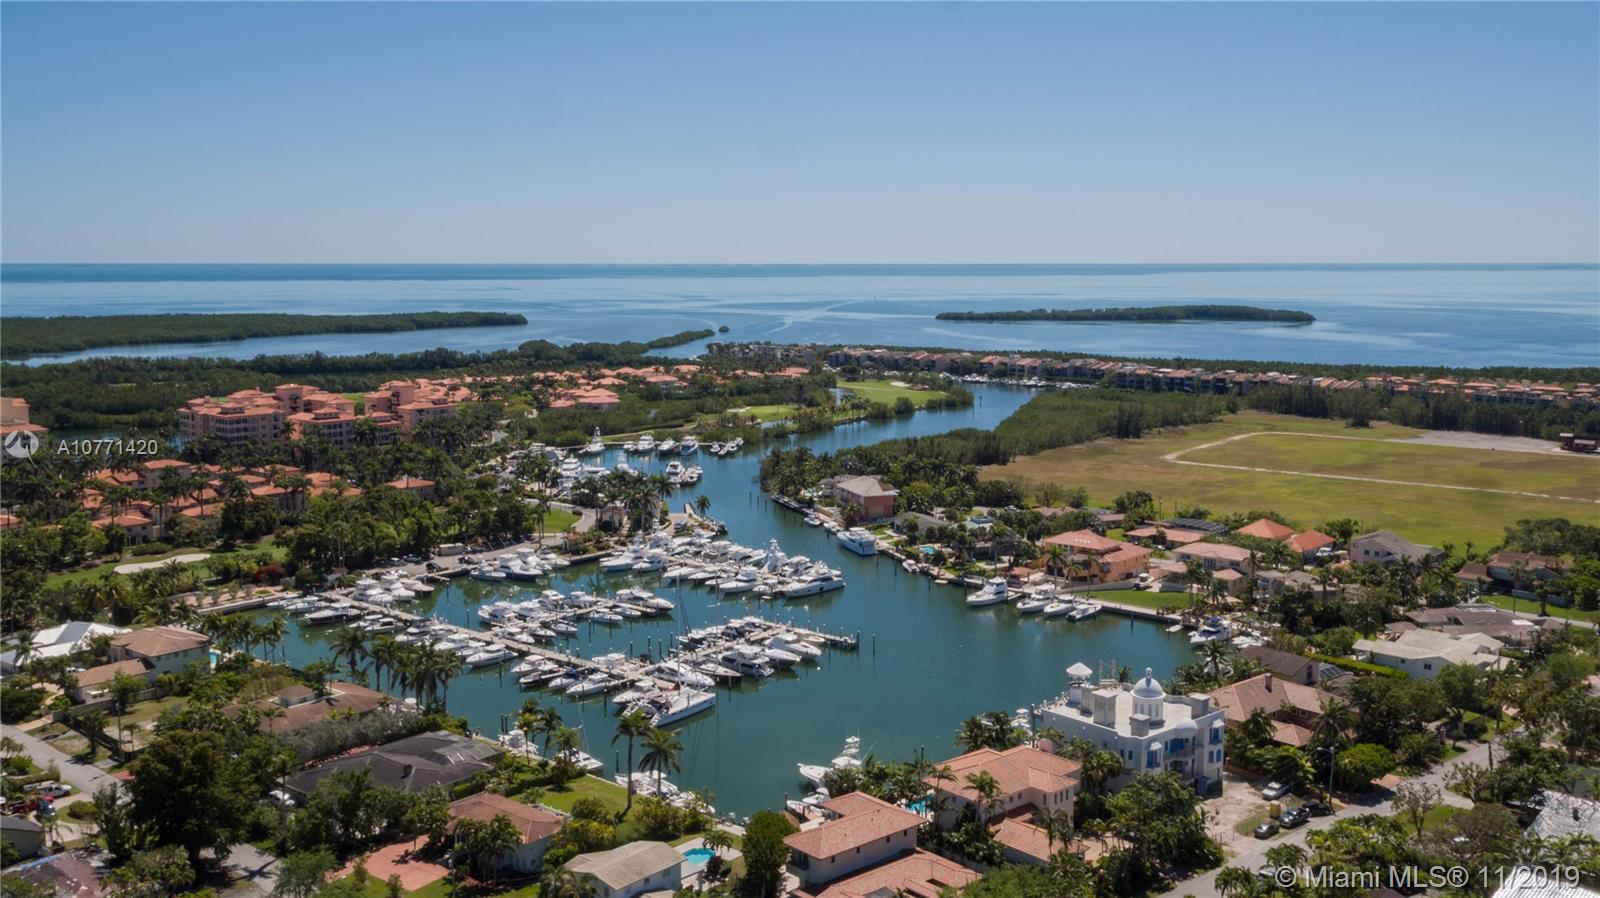 Property for sale at 6275 SW 147 TE, Palmetto Bay,  Florida 33158